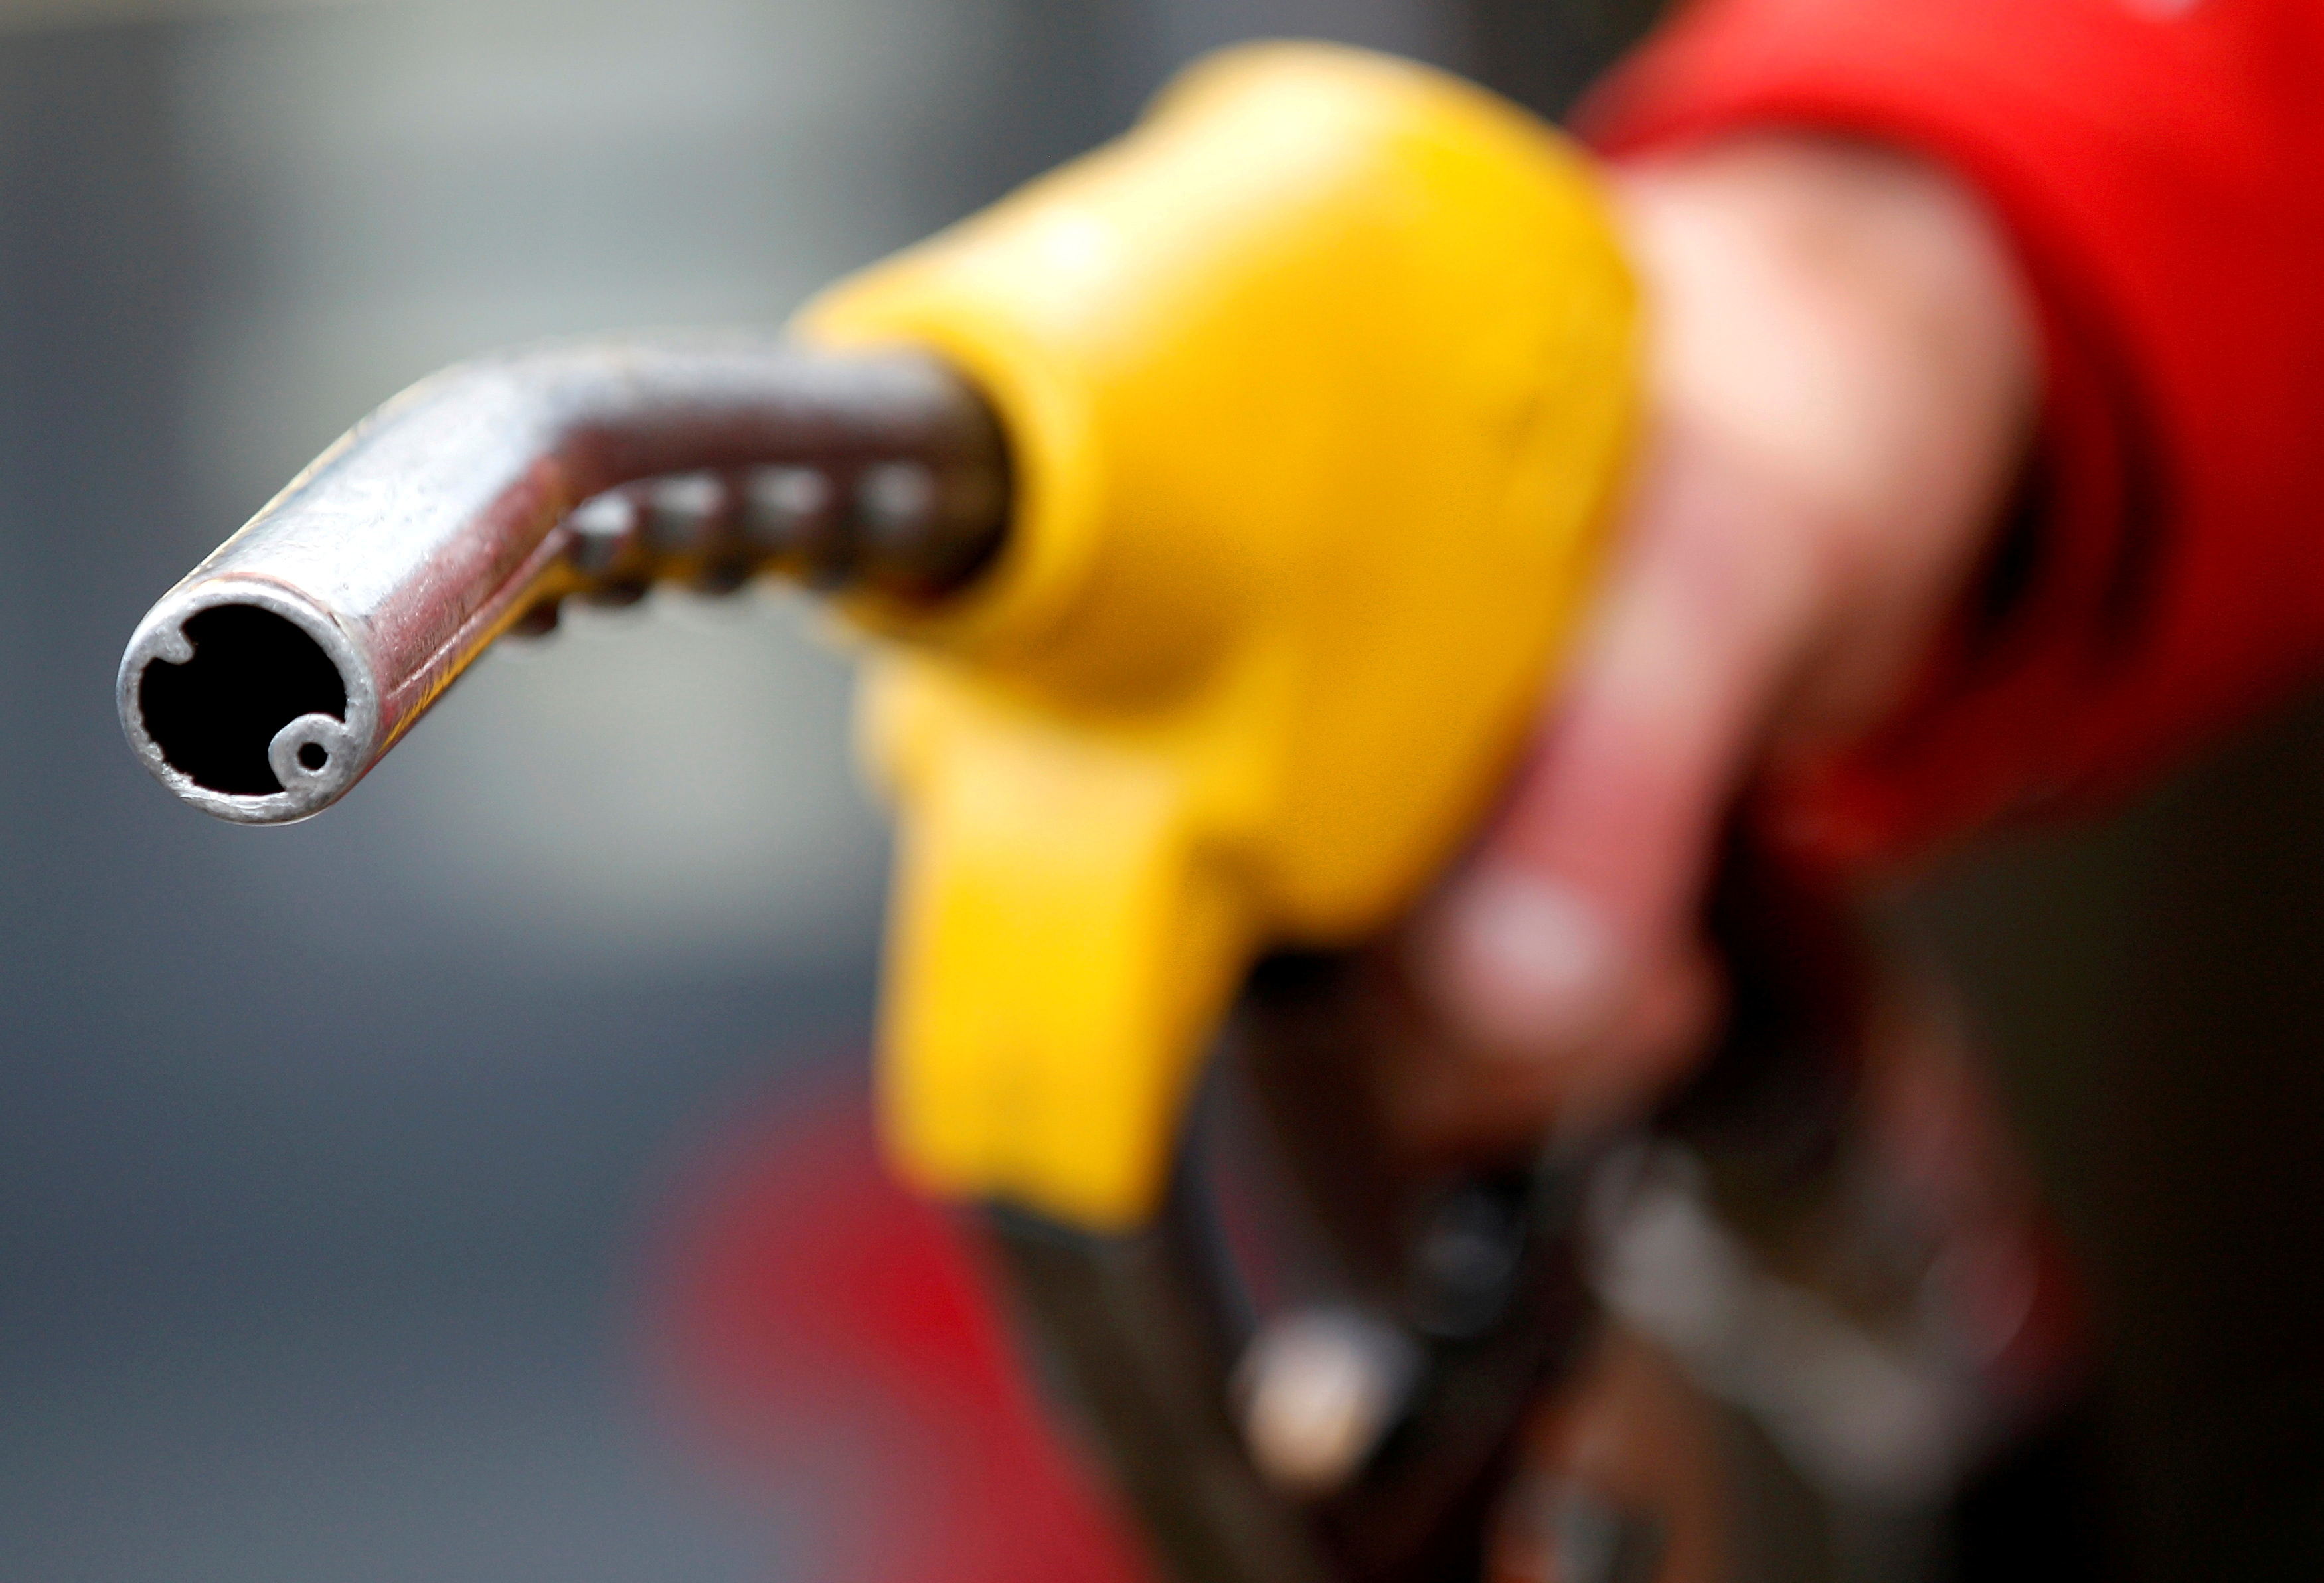 A petrol station attendant prepares to refuel a car in Rome, Italy, January 4, 2012. REUTERS/Max Rossi